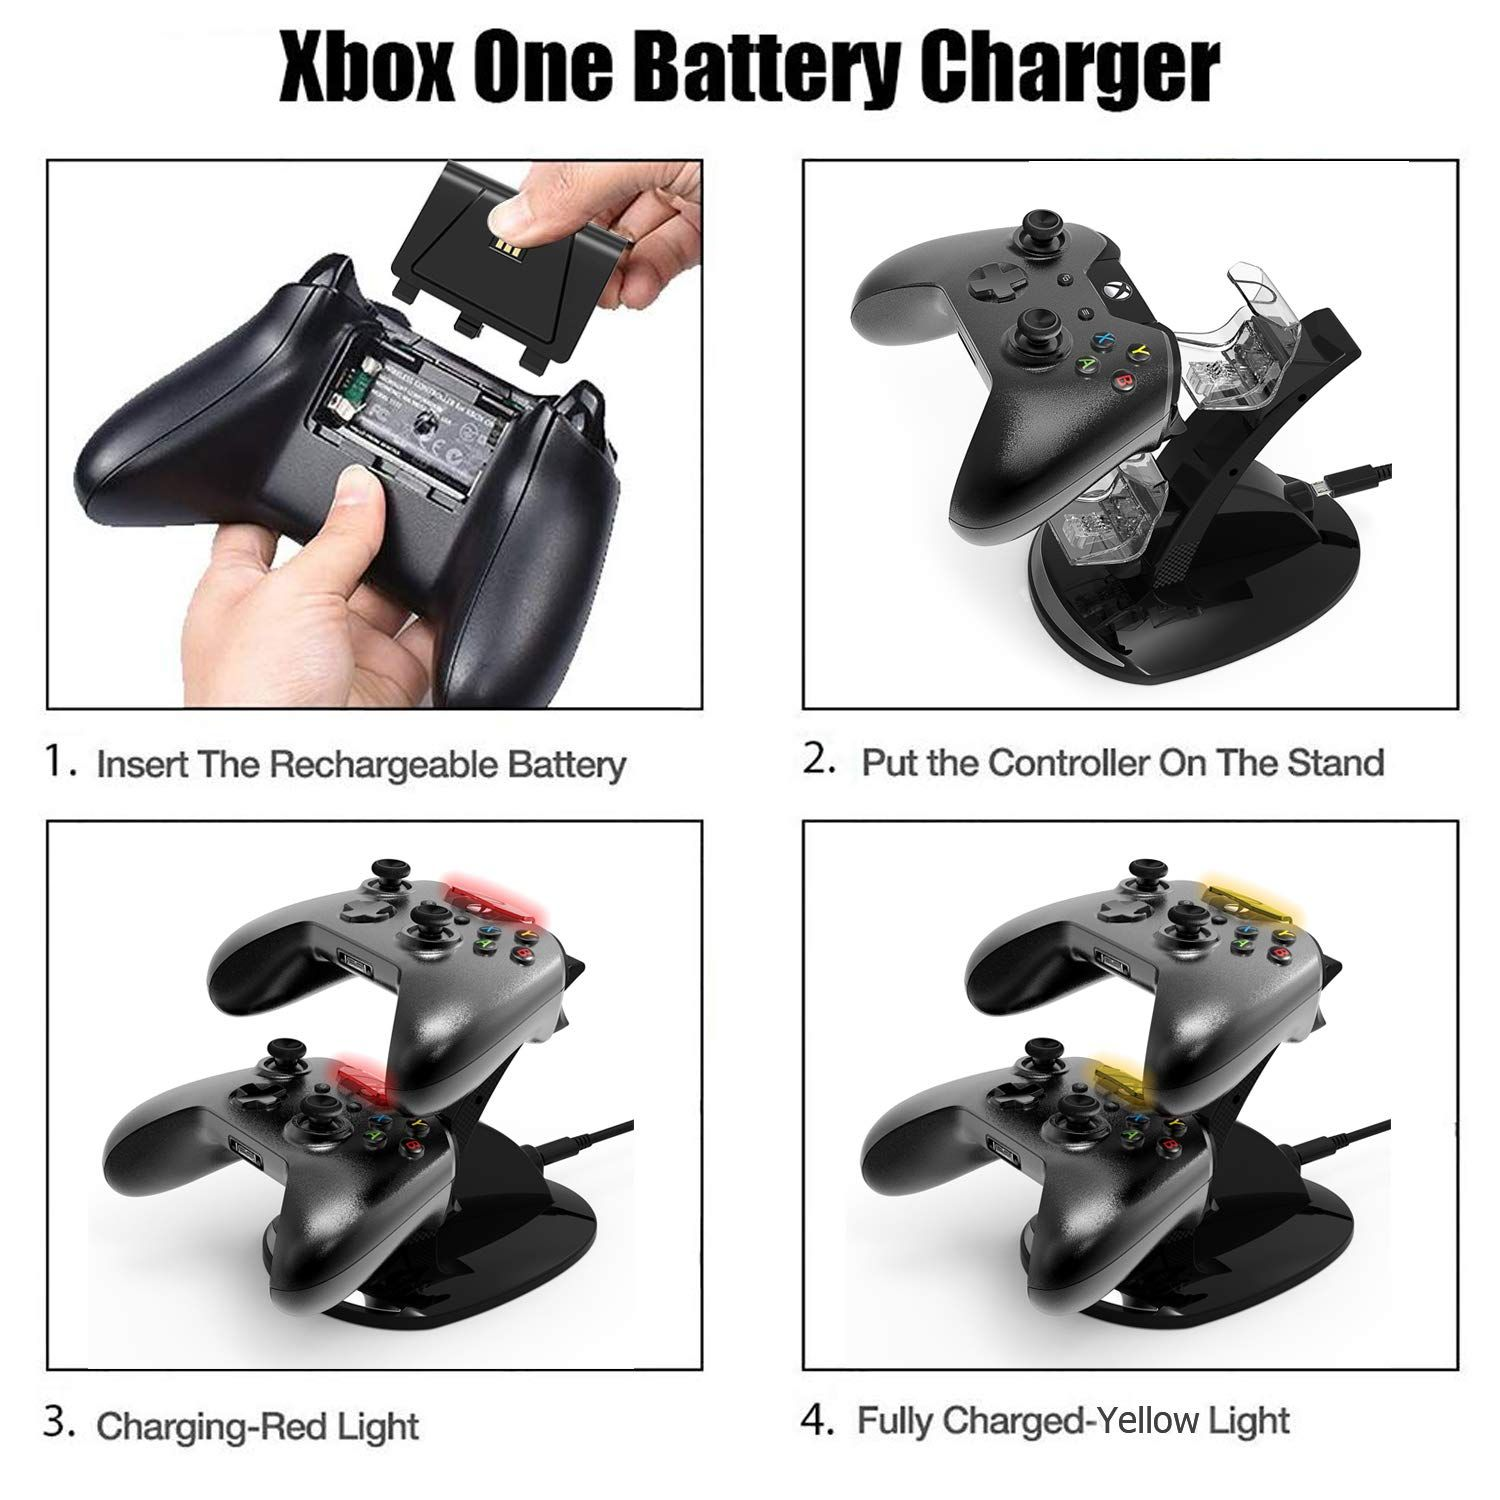 Xbox One One S Controller Charger Xbox One Dual Docking Charging Station Stand With 2 X Rechargeable Battery Packs Battery Pack Sport Shoes Charging Station